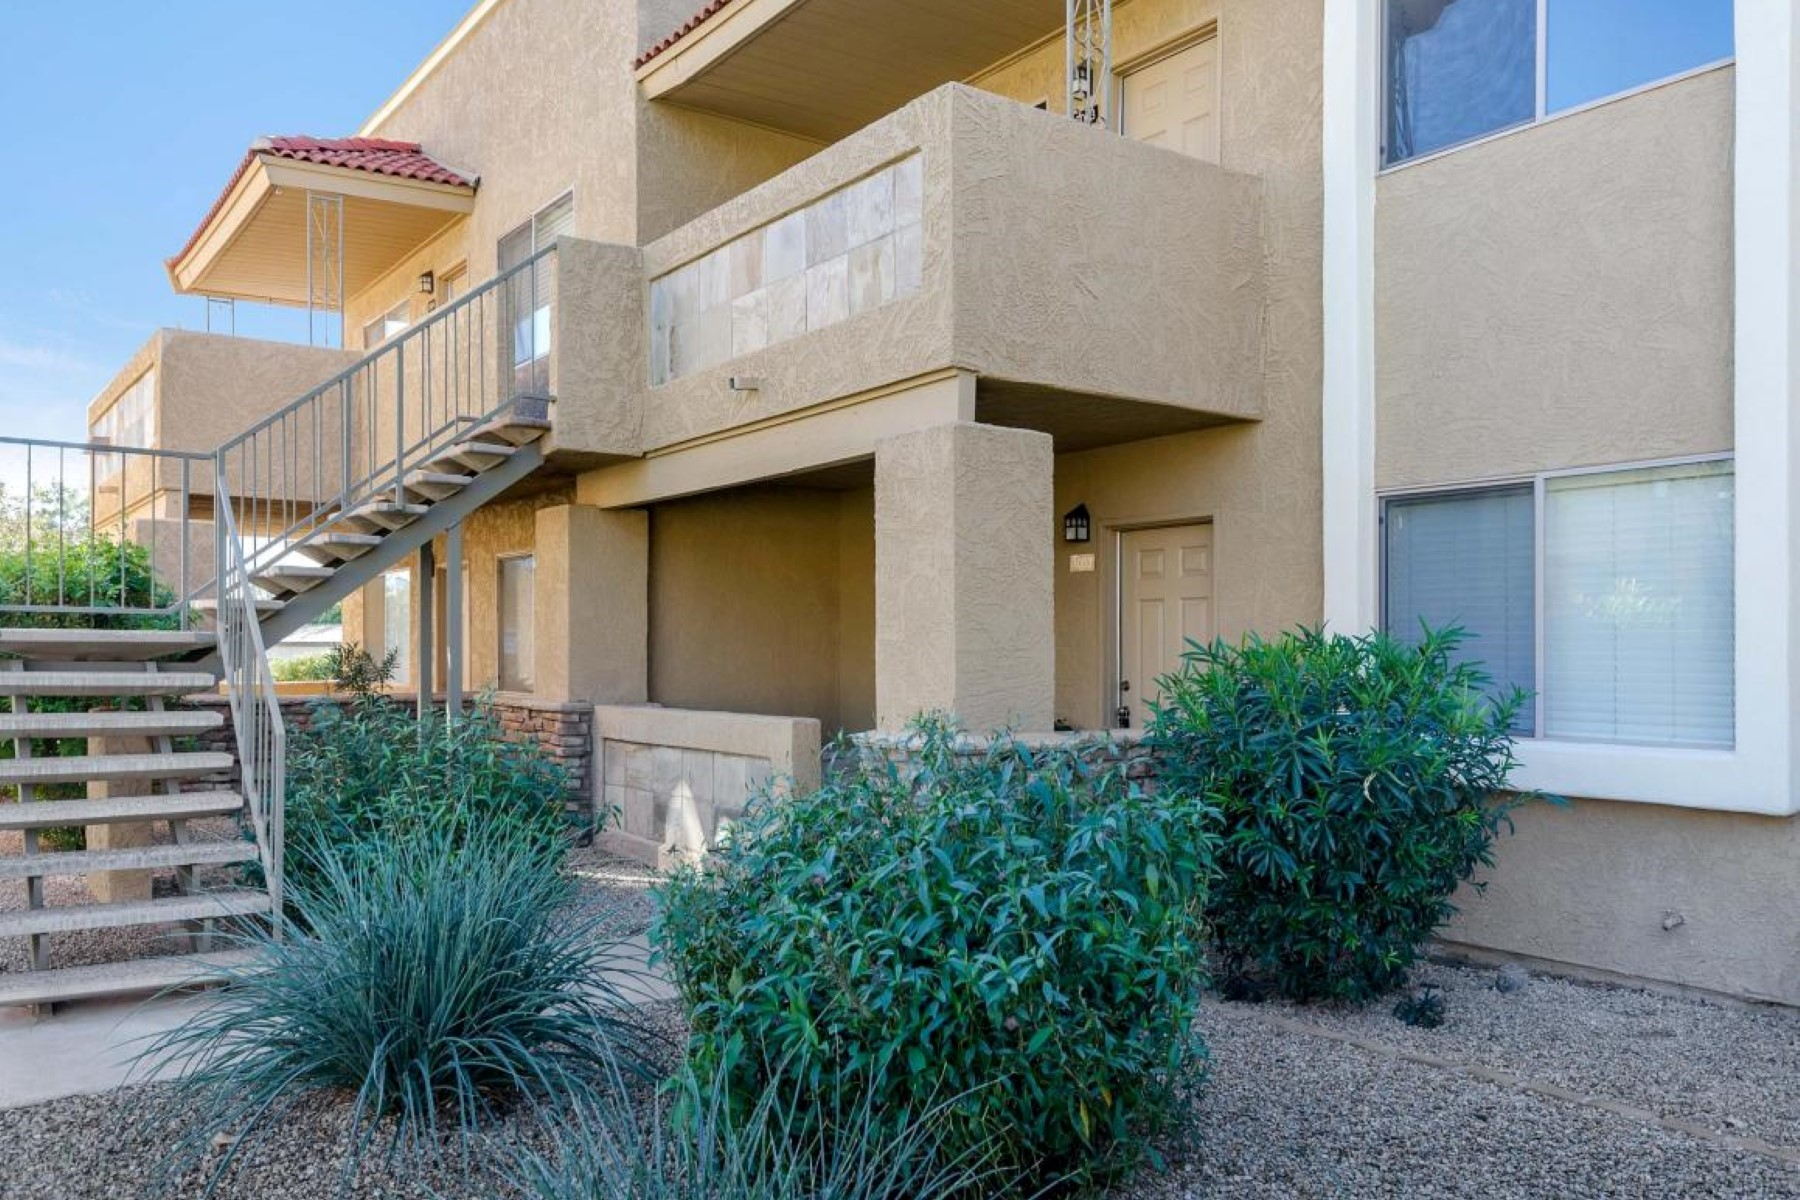 Apartment for Sale at Gated Community in Scottsdale 303 N MILLER RD #1003 Scottsdale, Arizona 85257 United States